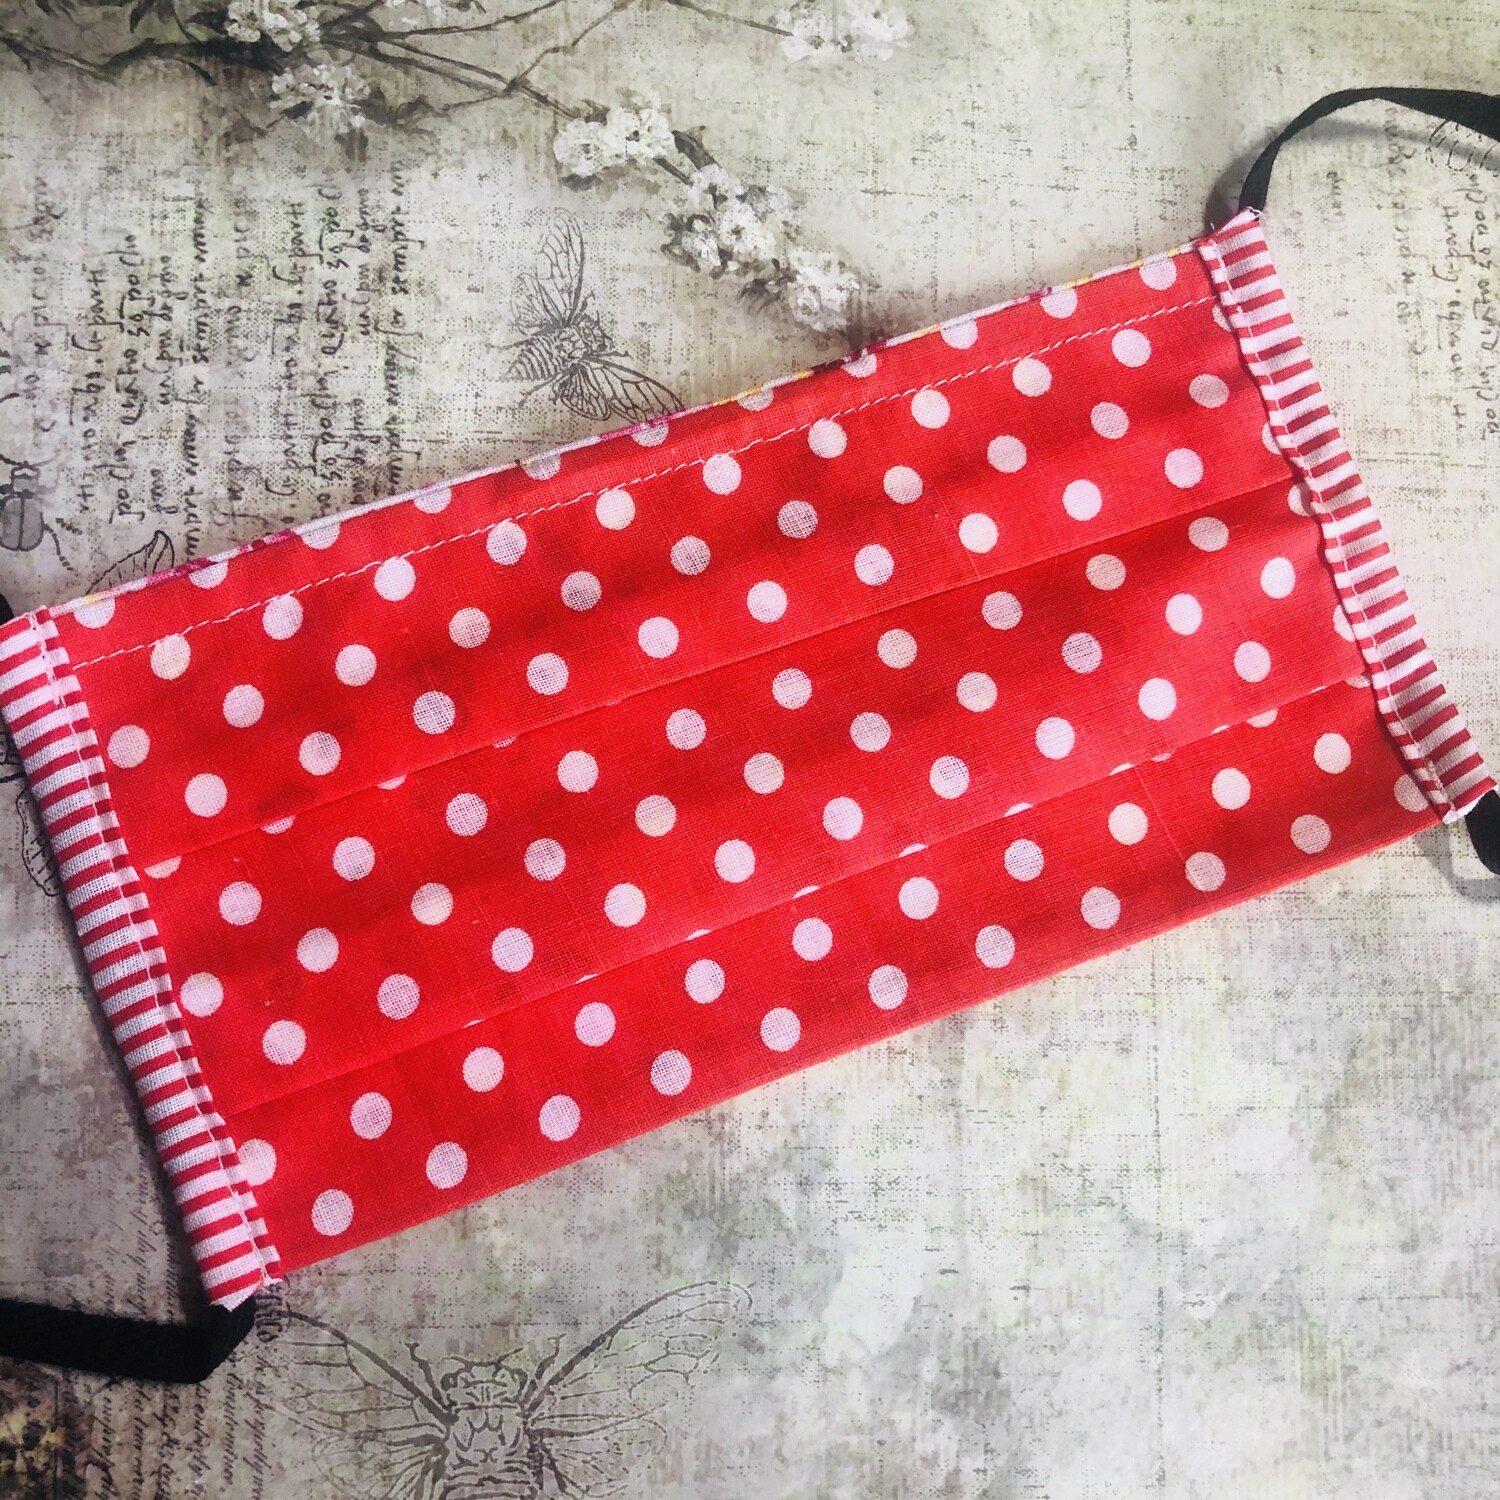 Cotton face mask - Polkadot, red (striped trim)